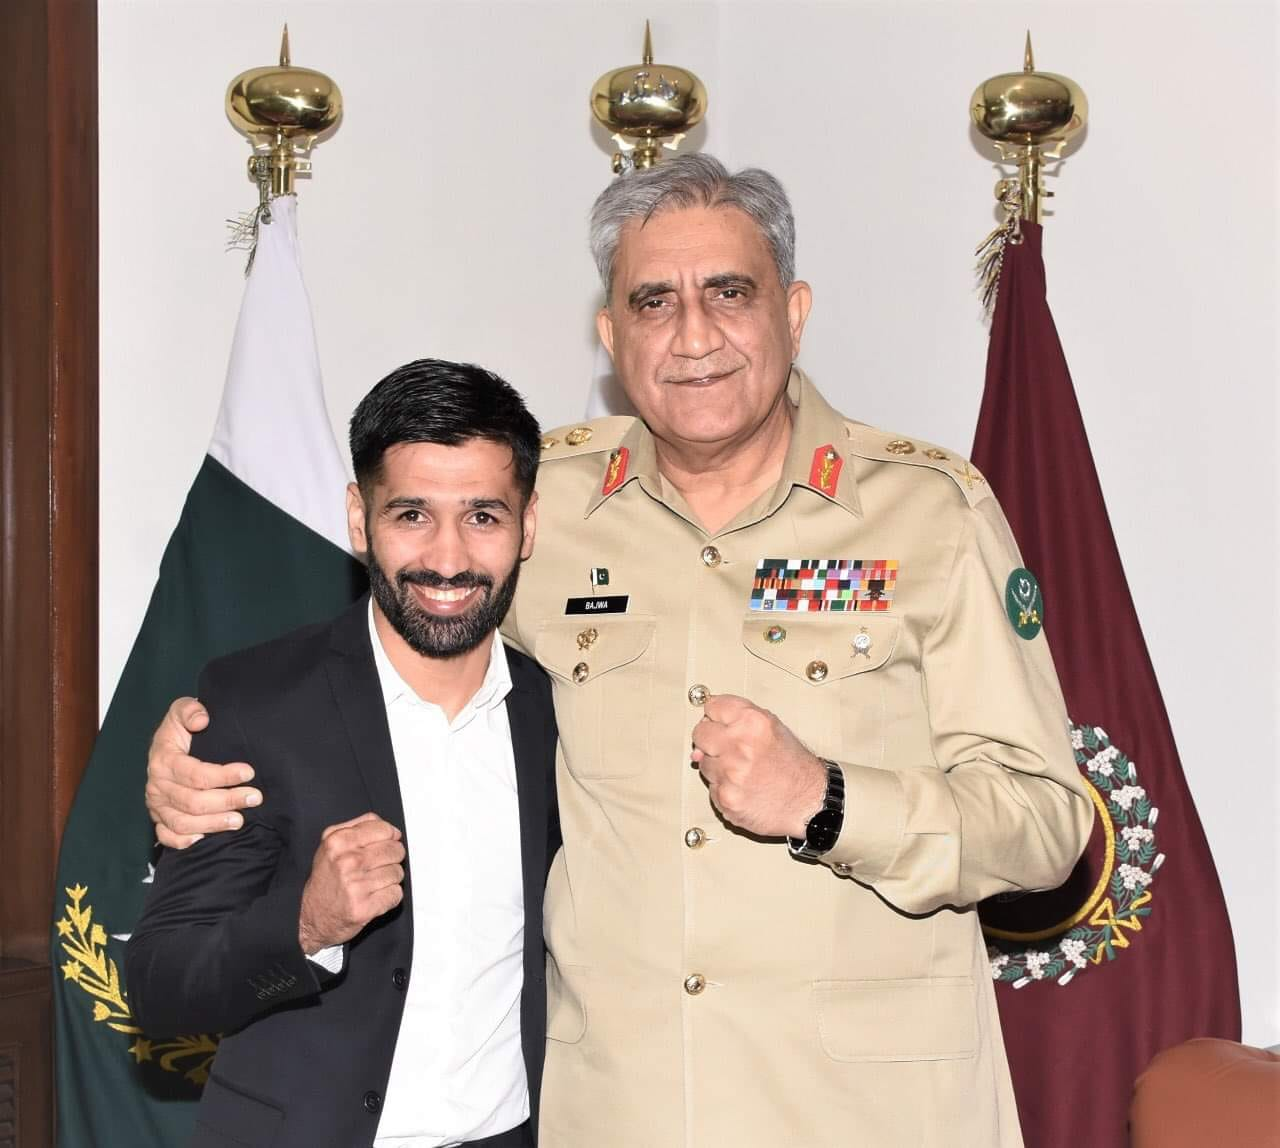 COAS Met Boxer Muhammad Waseem And Congratulated Him For The Recent Achievement